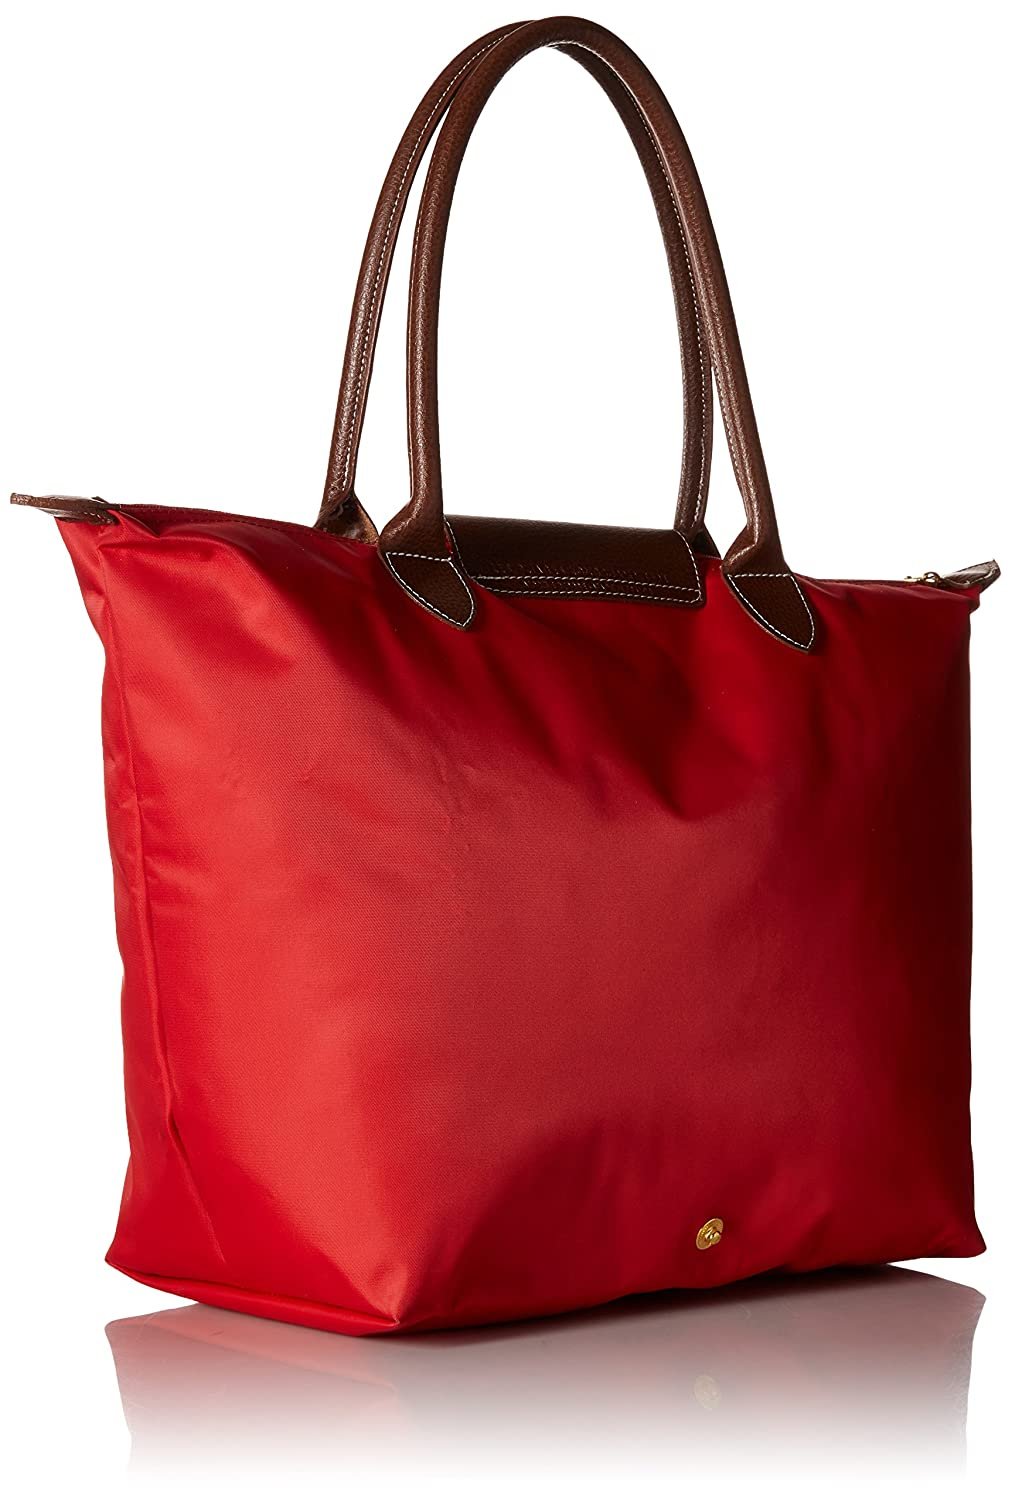 Find Best Portable Longchamp Le Pliage Hobo Bags Red